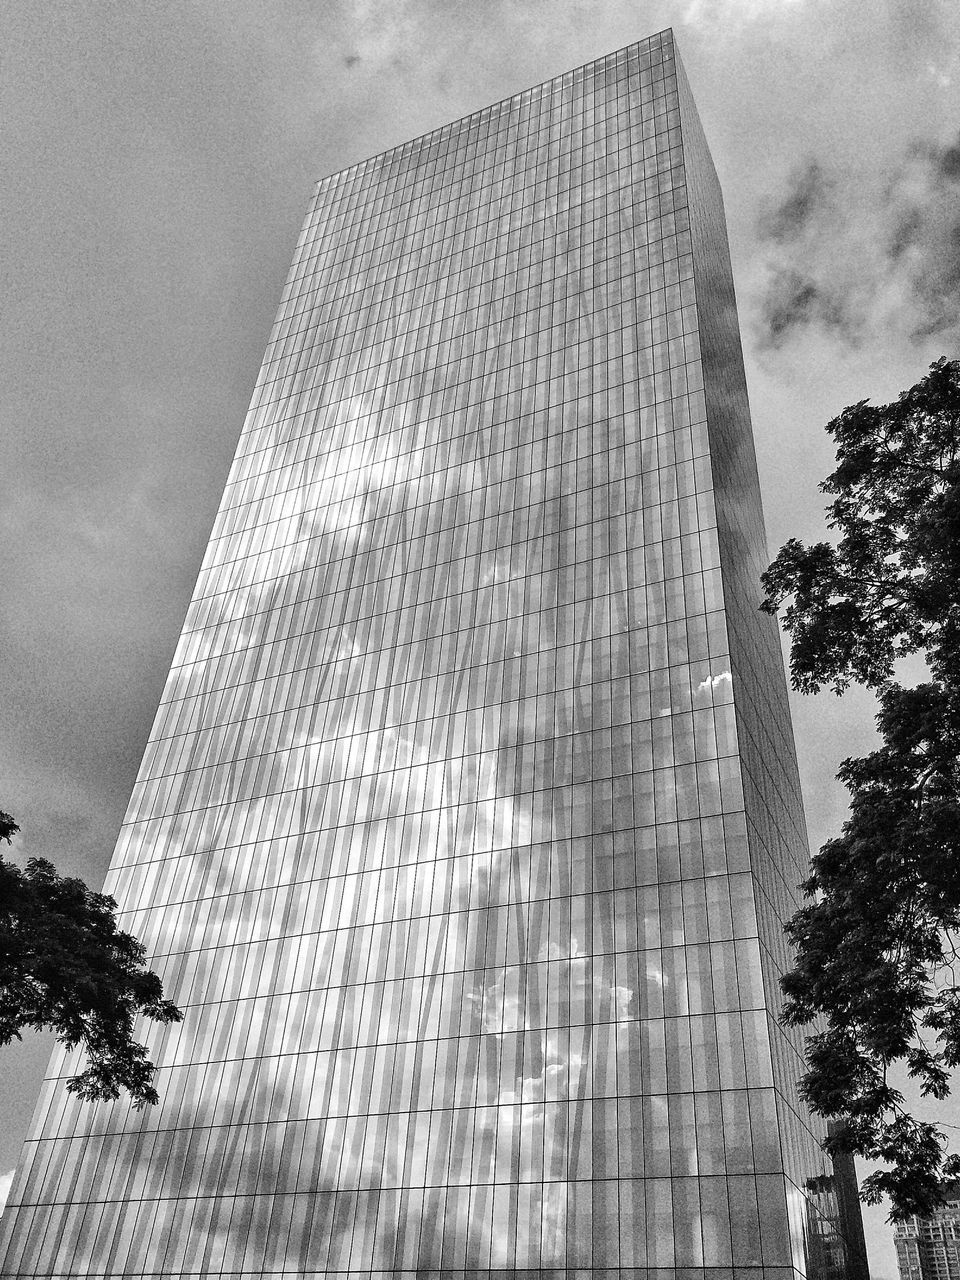 architecture, low angle view, built structure, sky, tall - high, building exterior, tree, skyscraper, day, history, outdoors, modern, cloud - sky, travel destinations, no people, city, pyramid